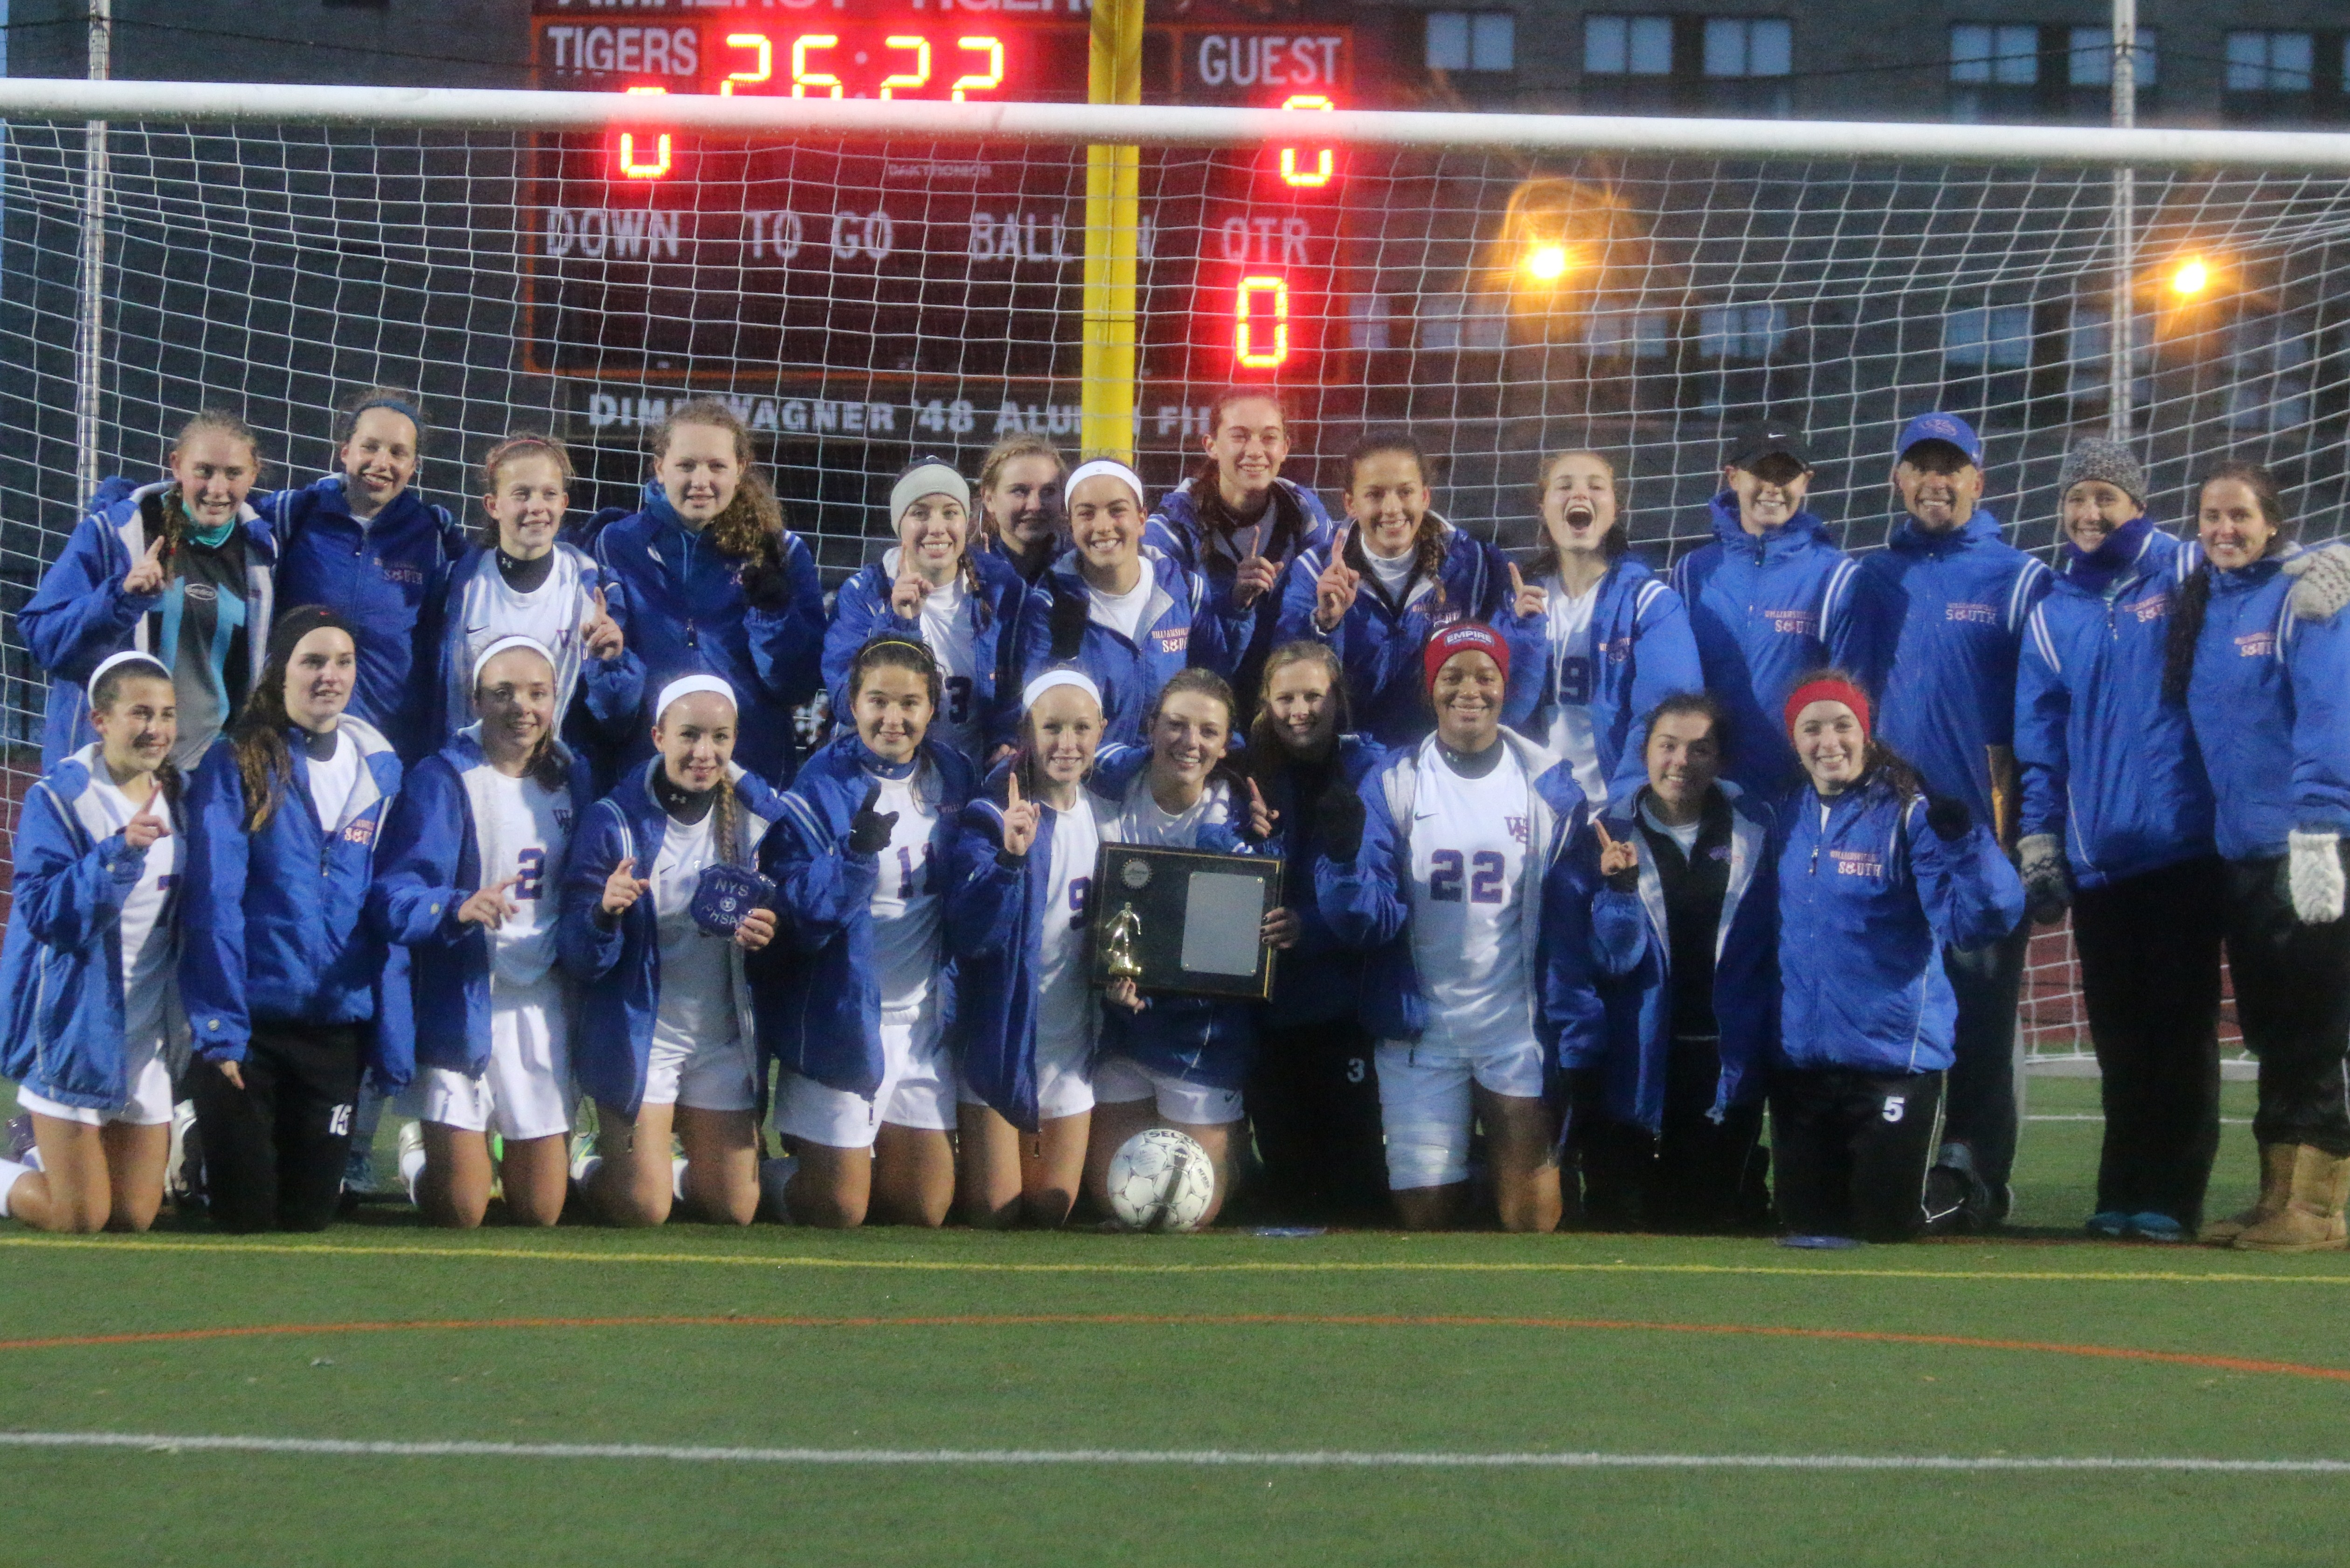 Champions fall 2013 sectional champions